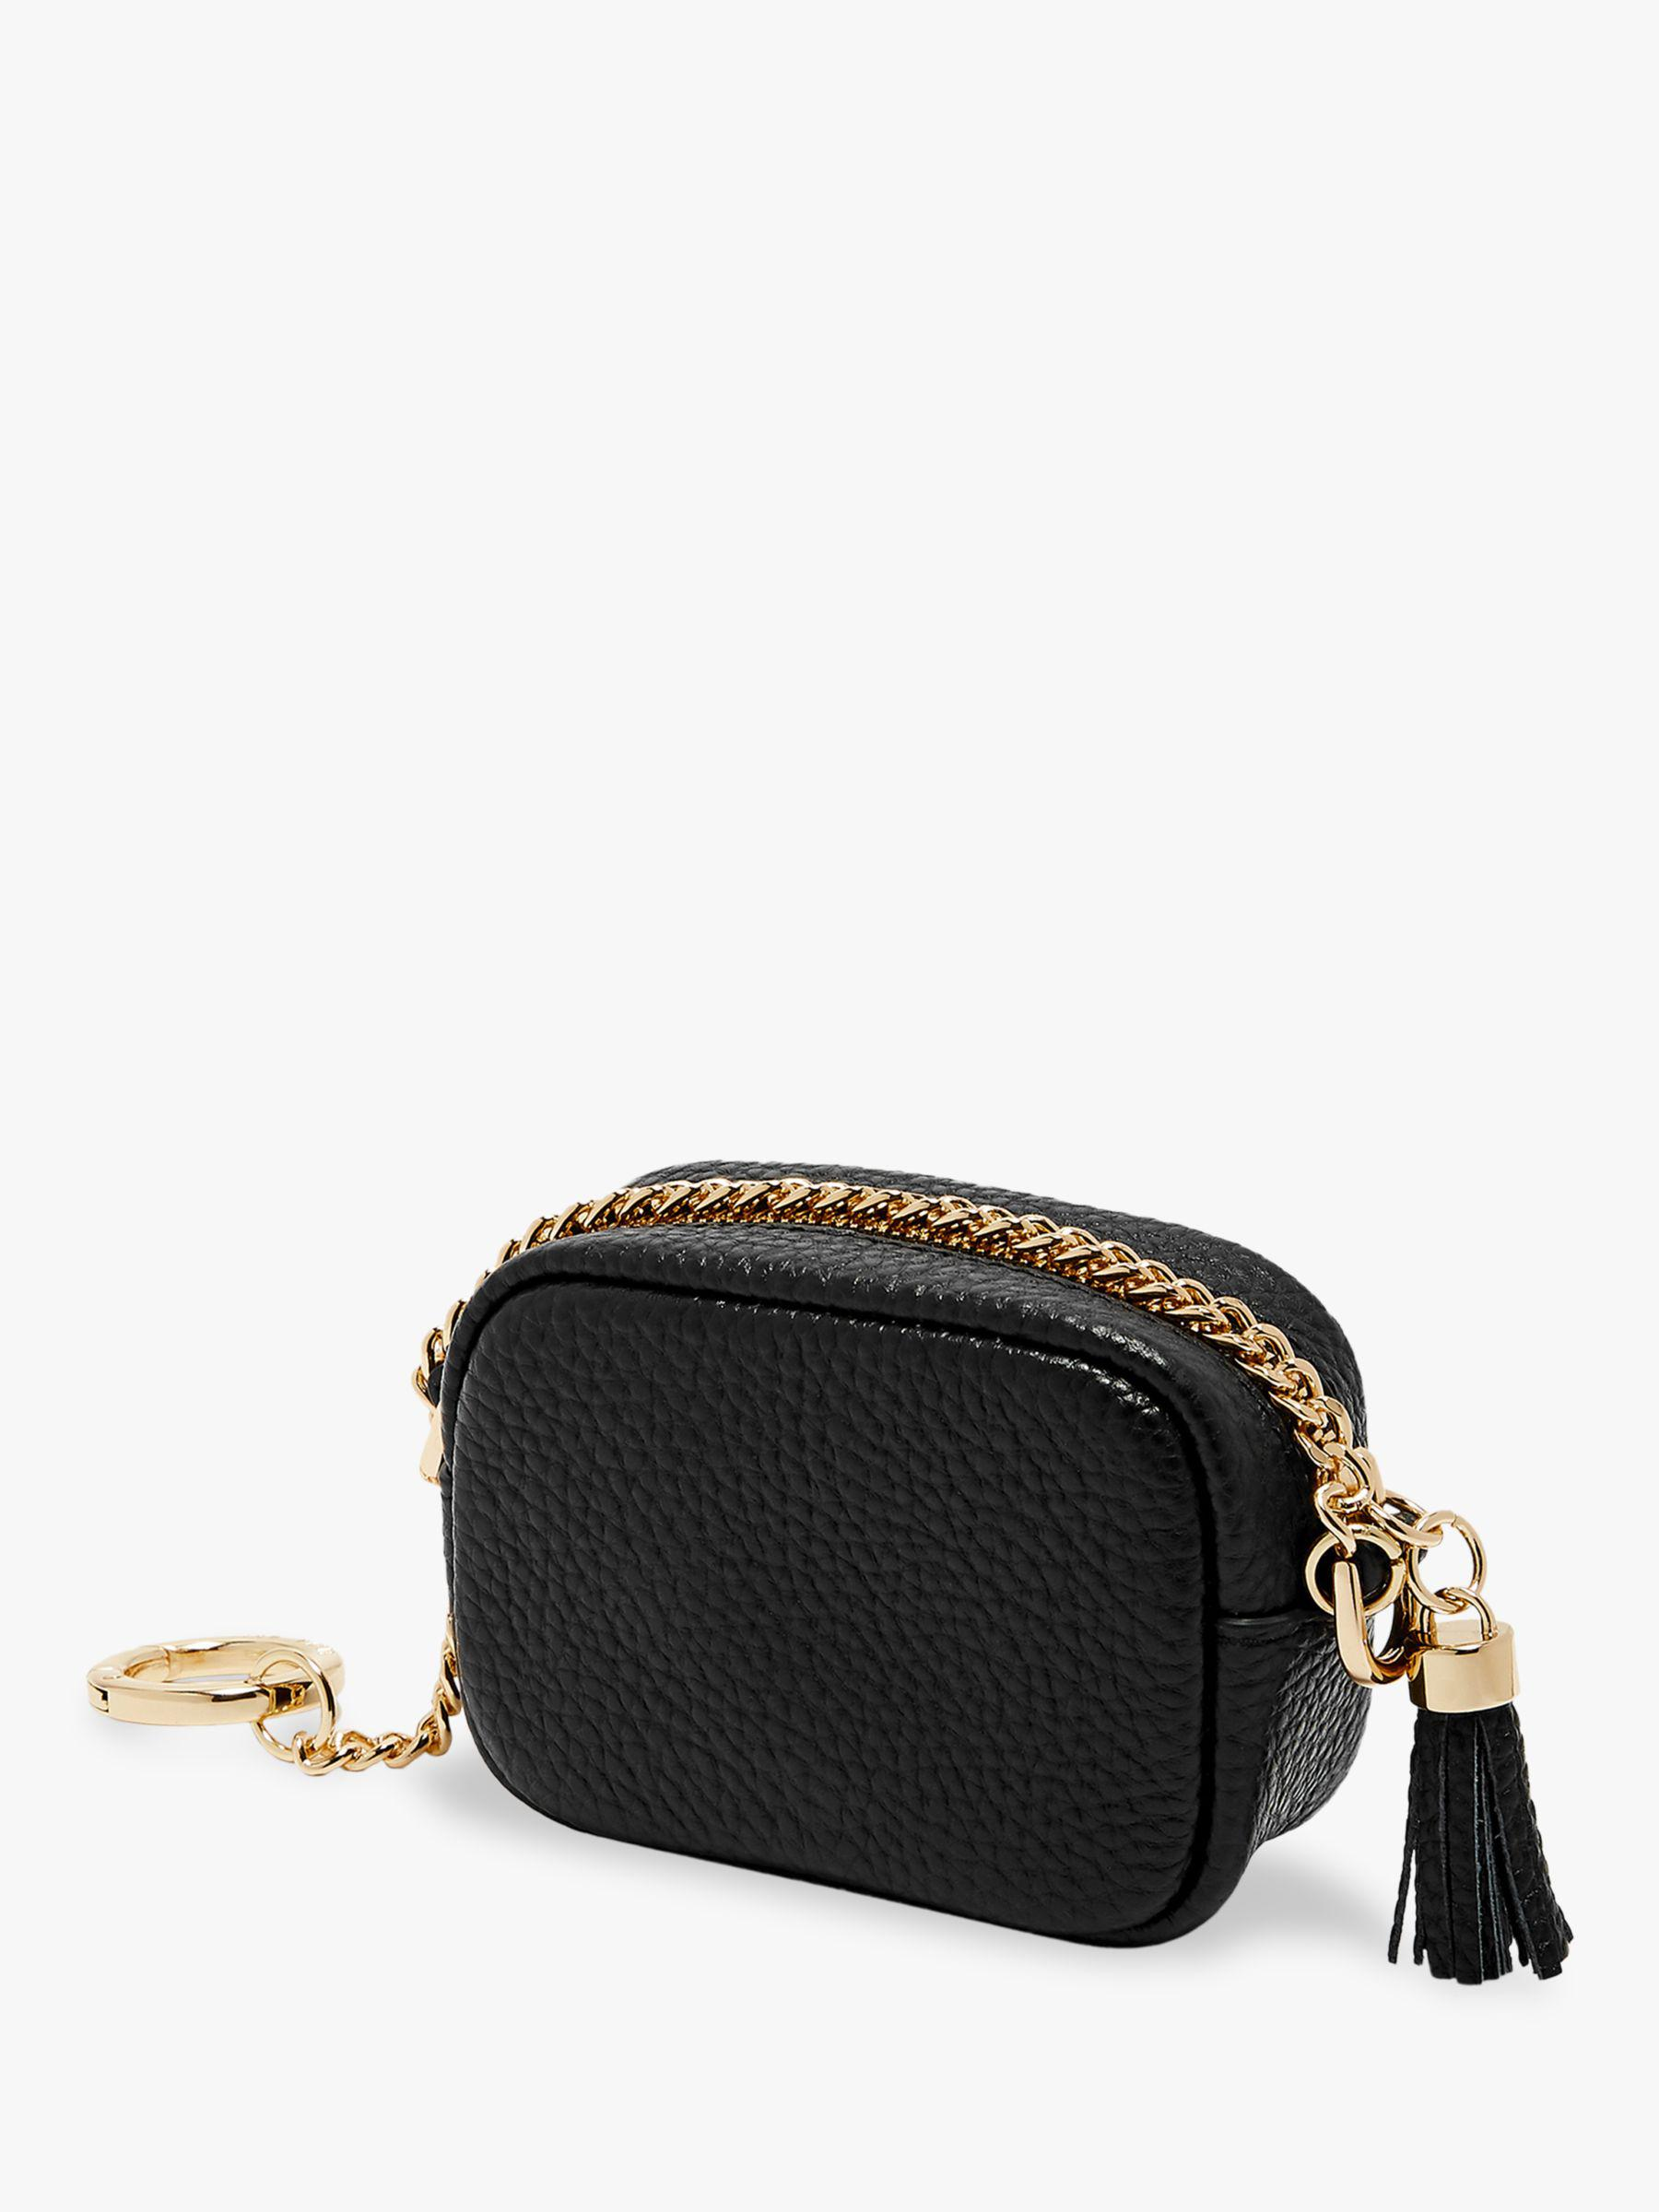 e3d70d700a Ted Baker Leather Bag Charm in Black - Lyst